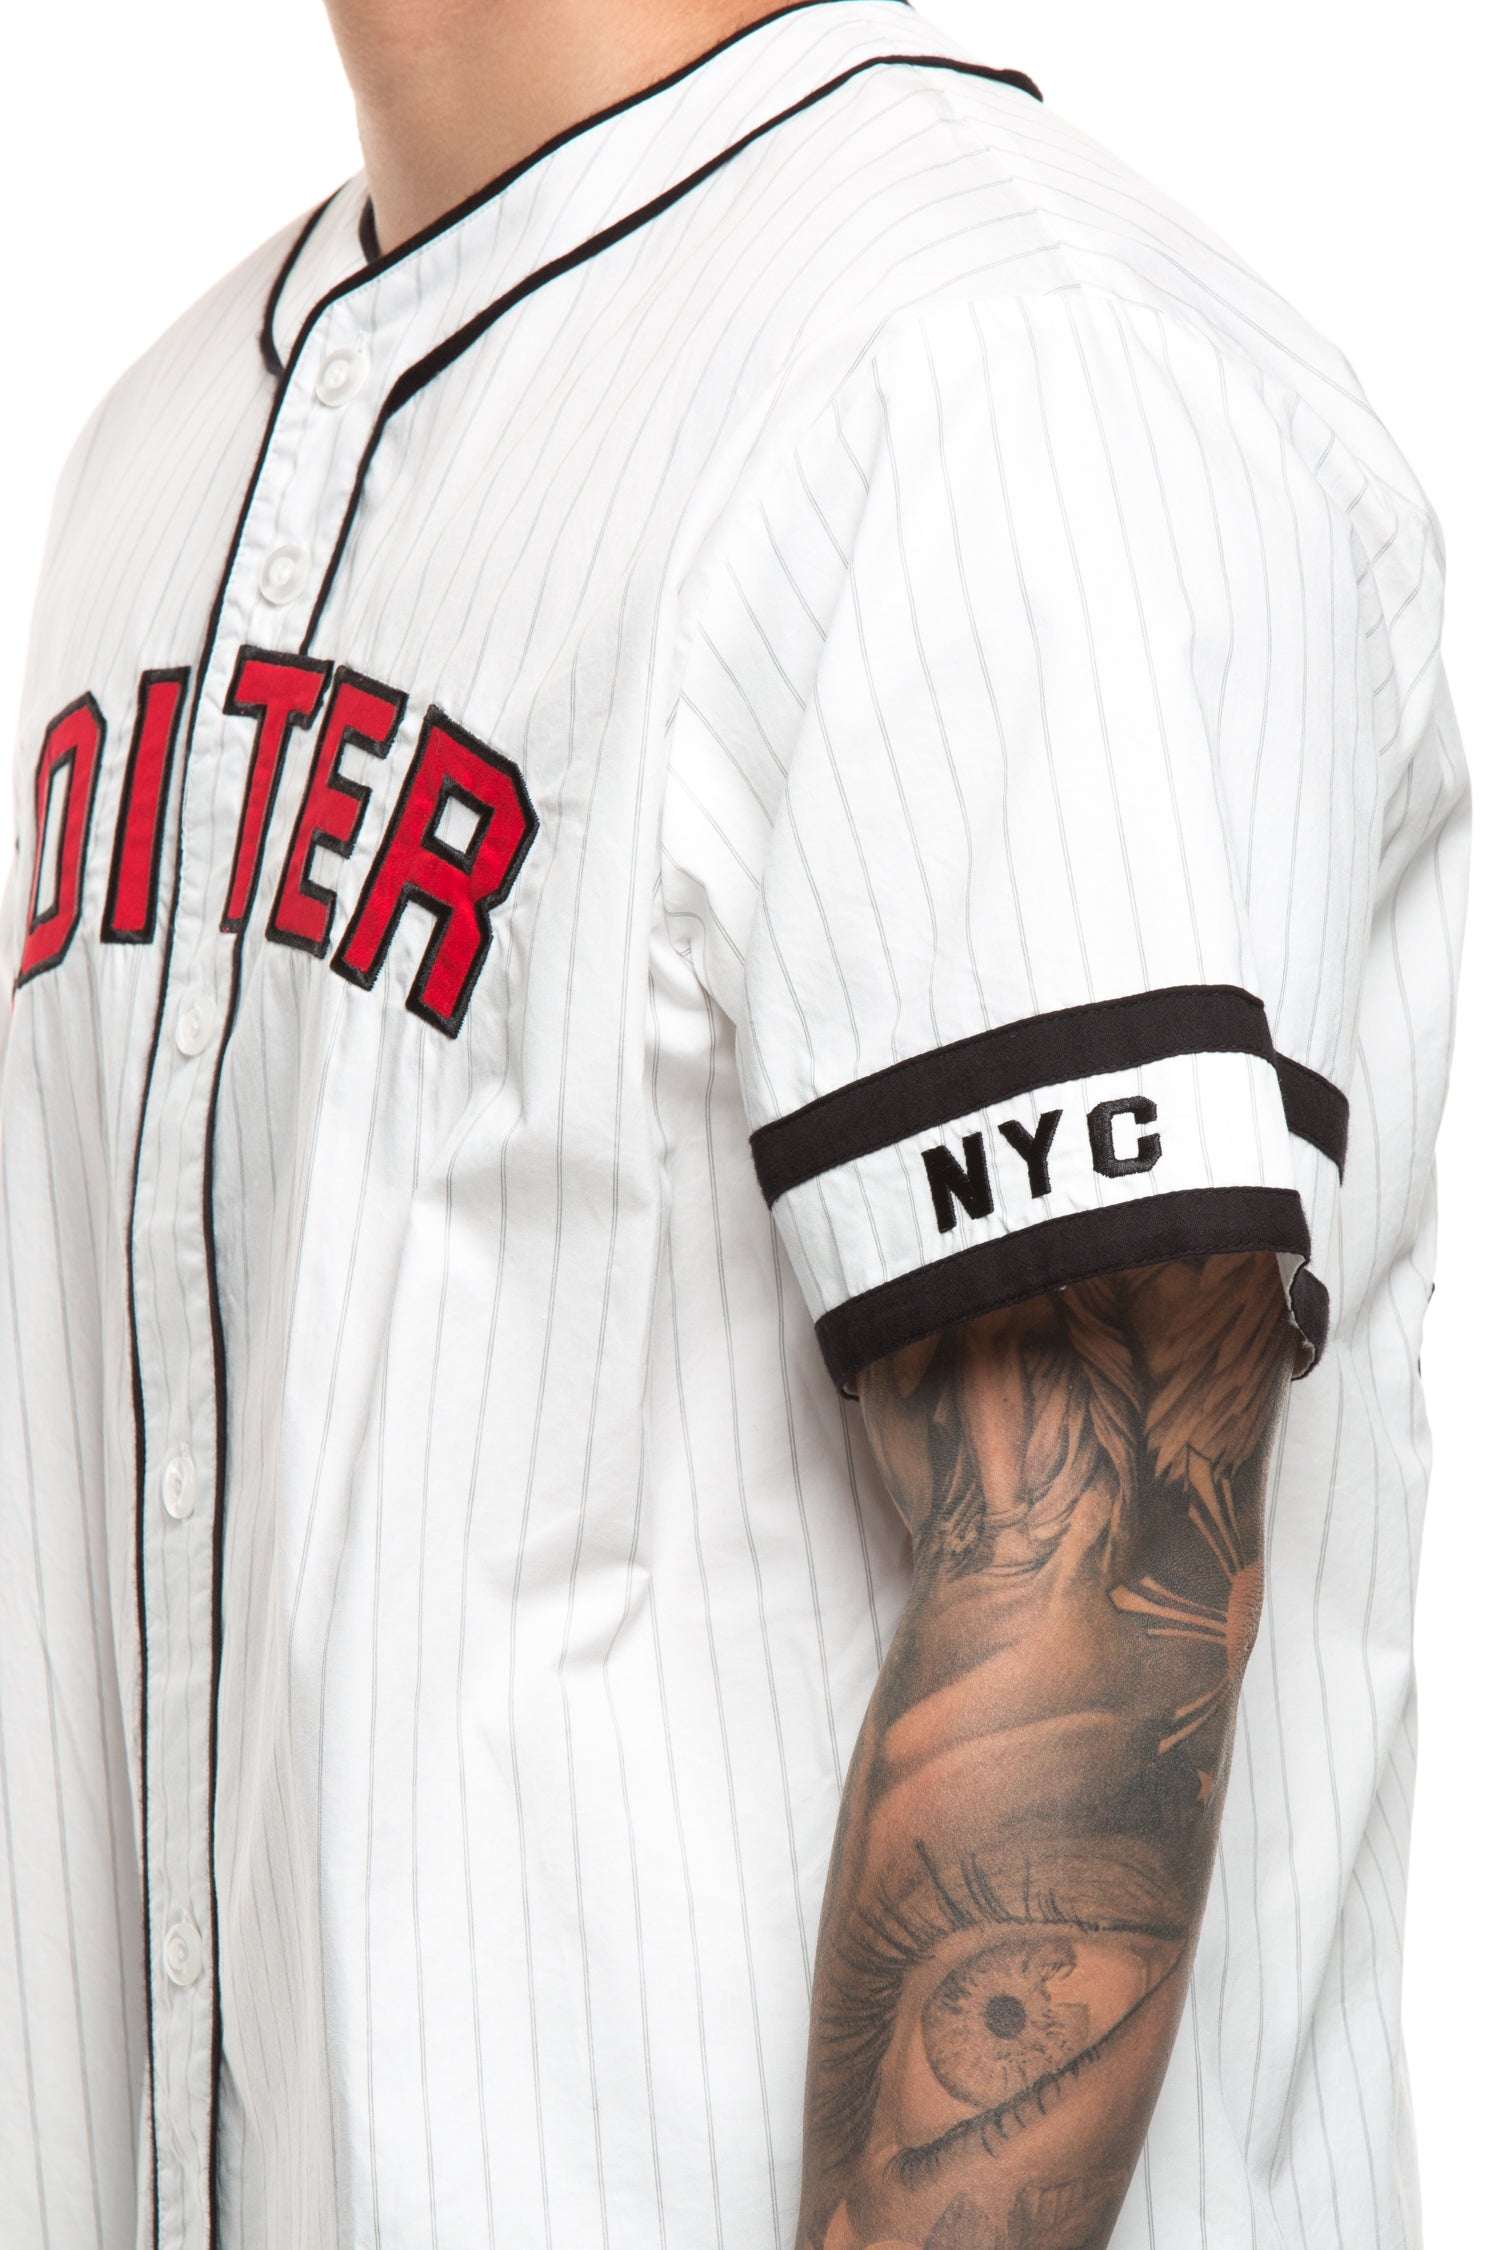 OVERSIZED JERSEY - White/Black/Red